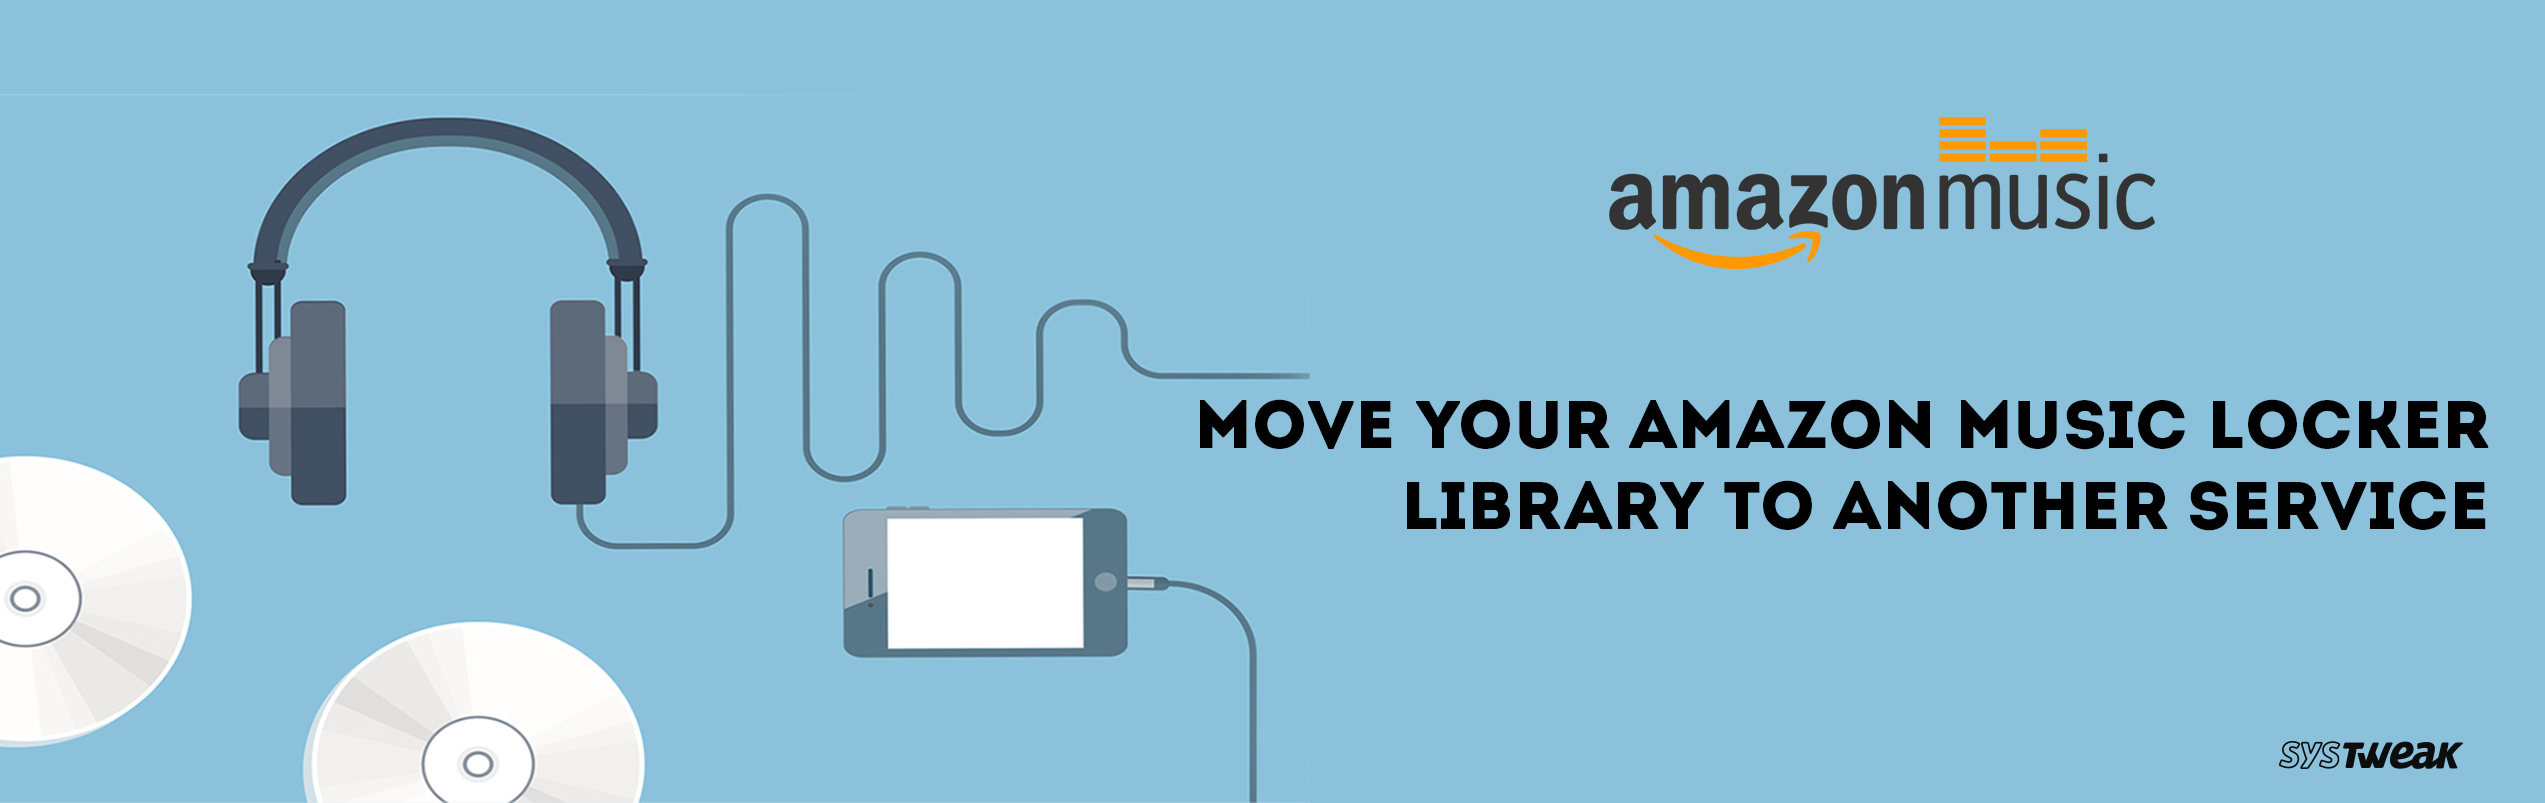 How To Move Your Amazon Music Locker Library To Another Service?